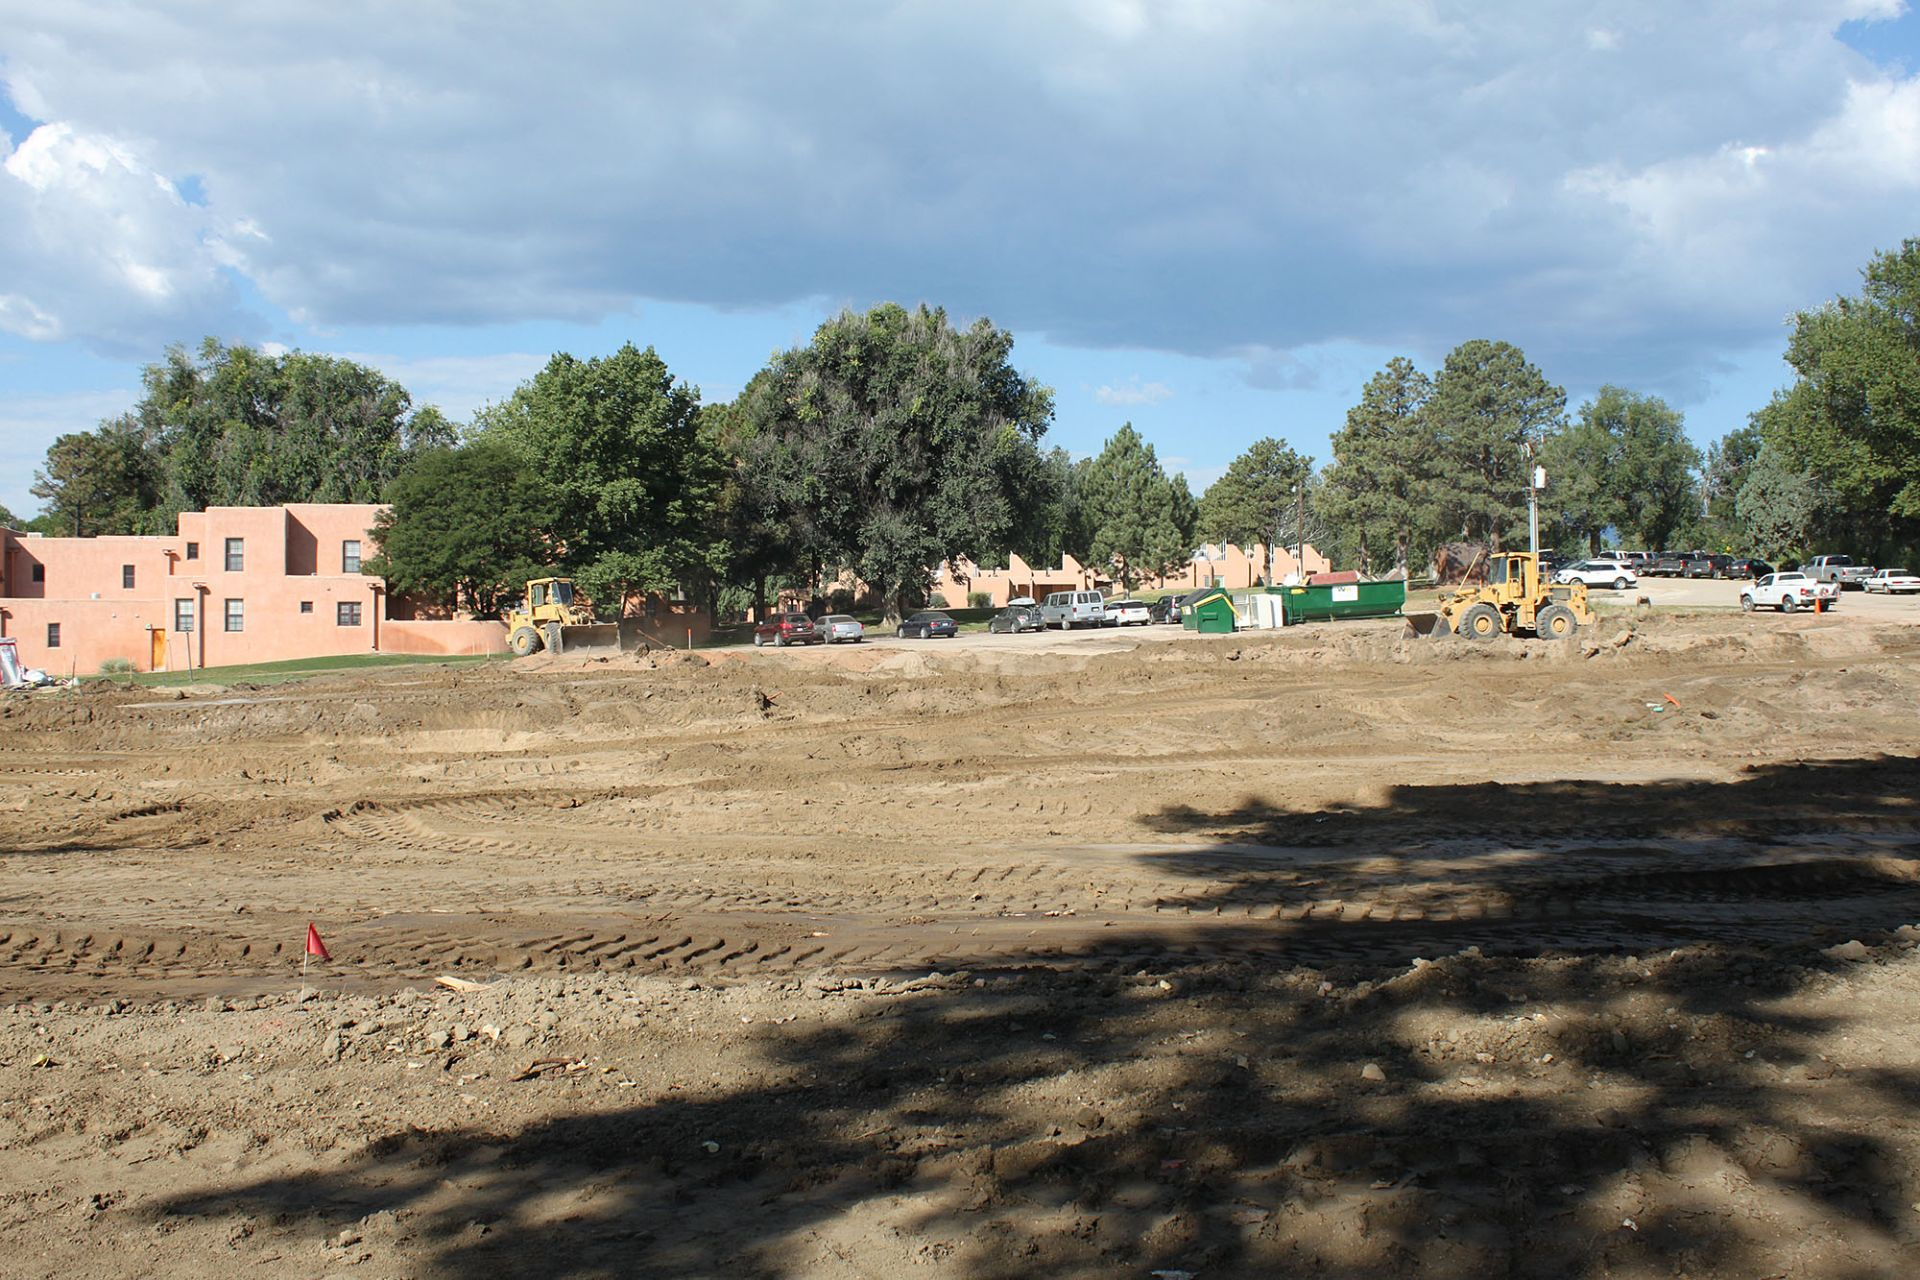 Looking from the outdoor arena toward the dorms ... the old maintenance area is gone!